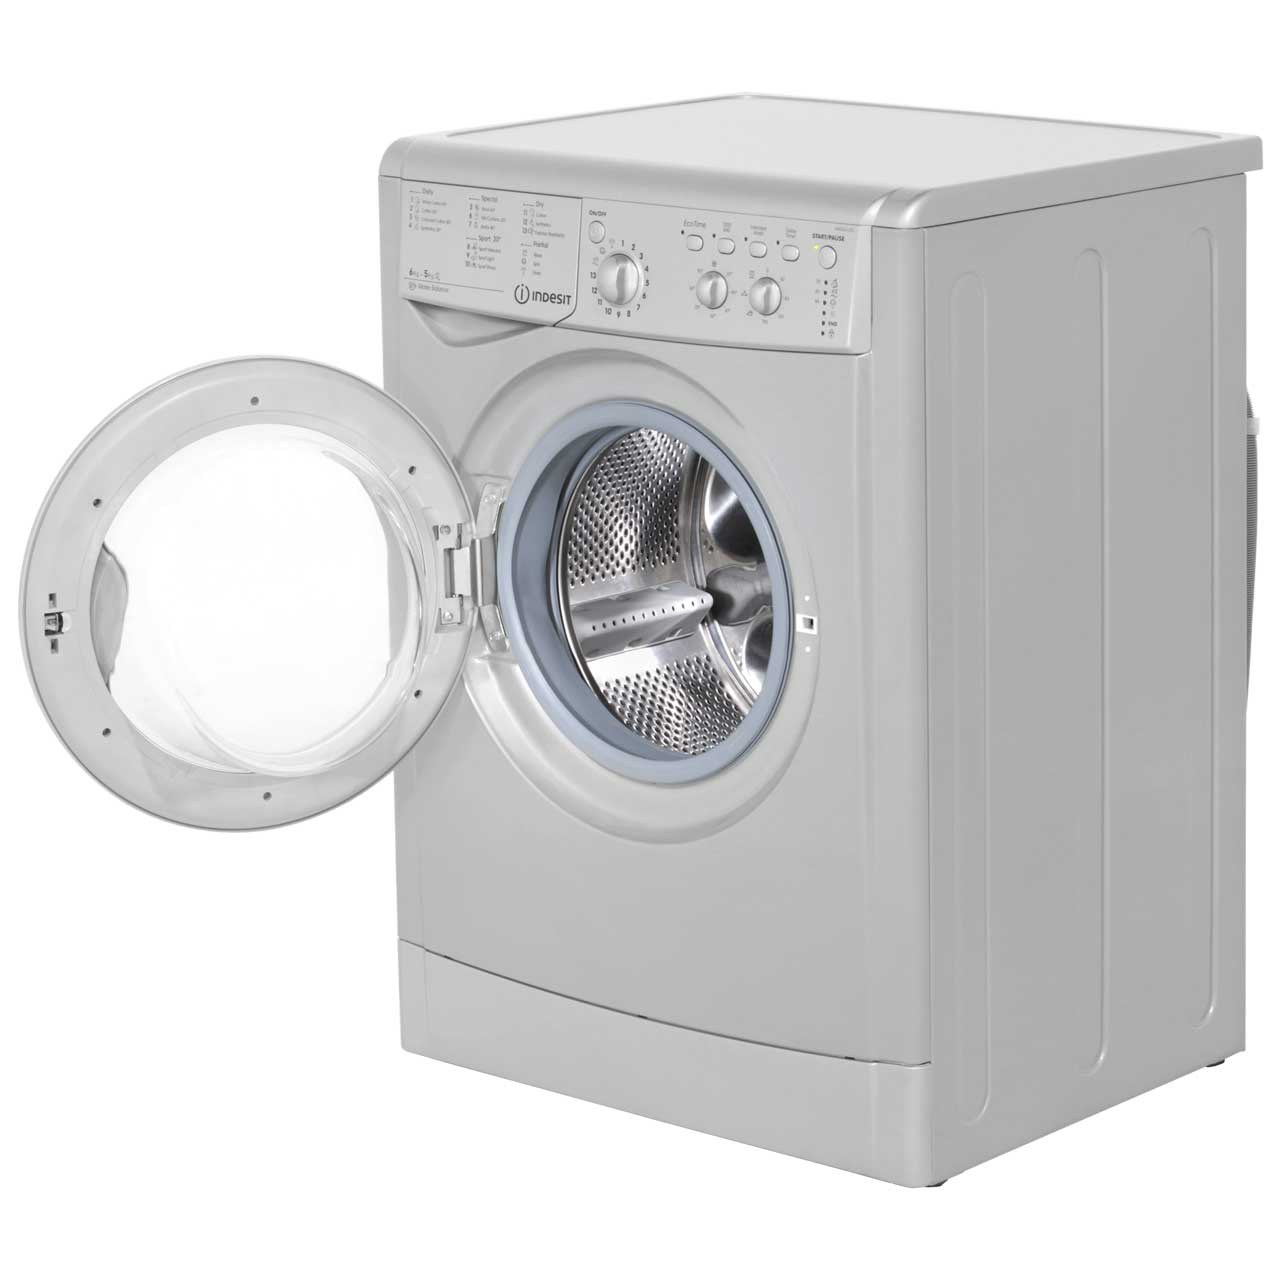 indesit iwdc6125s eco time free standing 6kg washer dryer silver new from ao 8007842625127 ebay. Black Bedroom Furniture Sets. Home Design Ideas